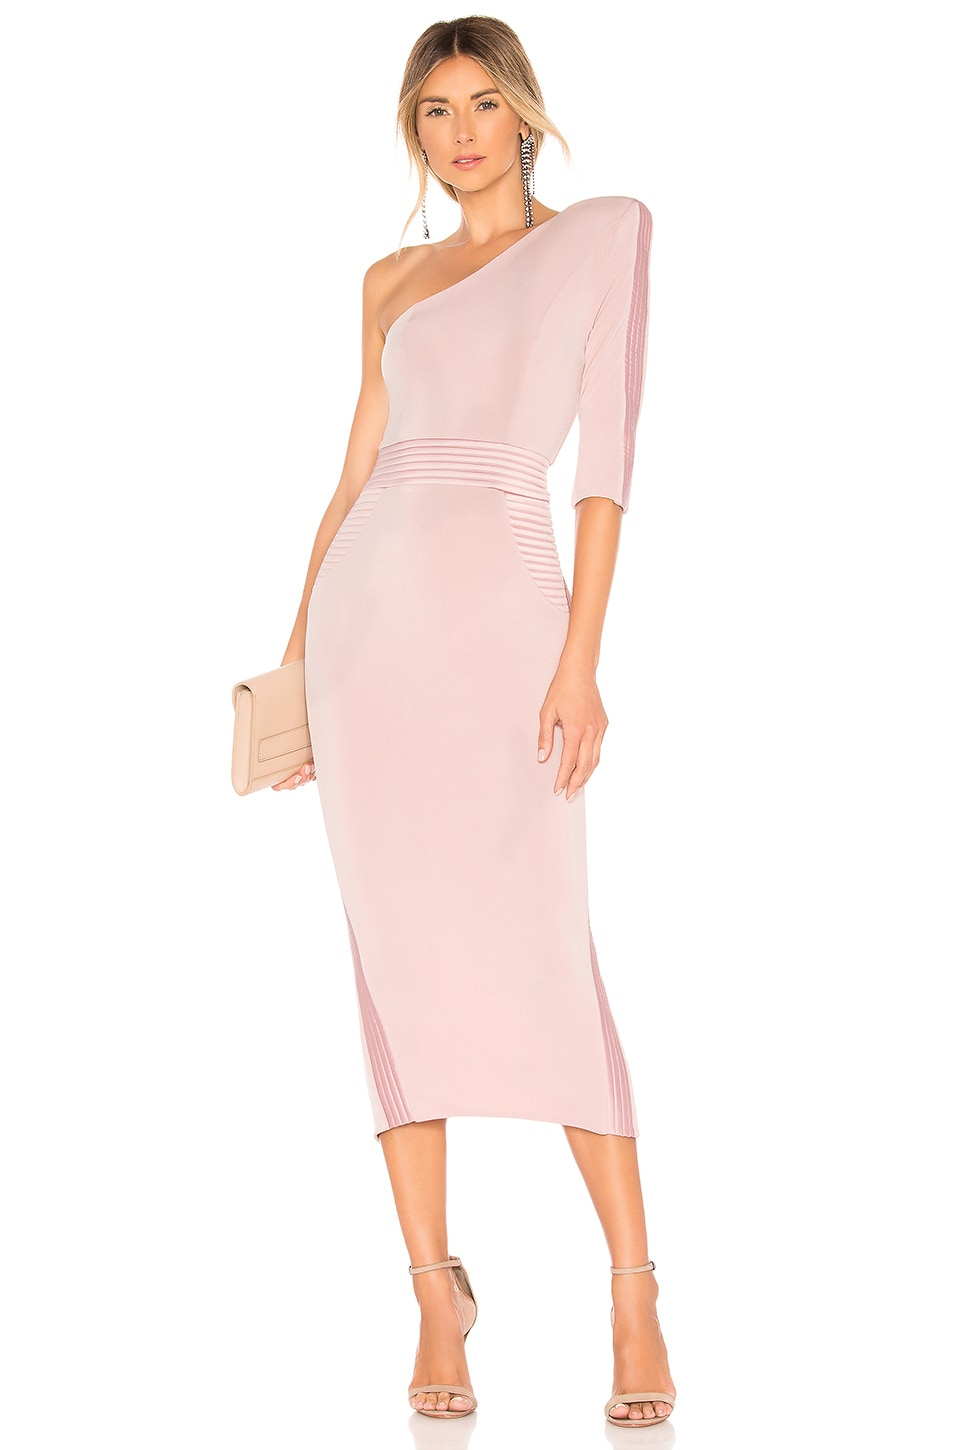 Zhivago Follow Me Dress in Blush